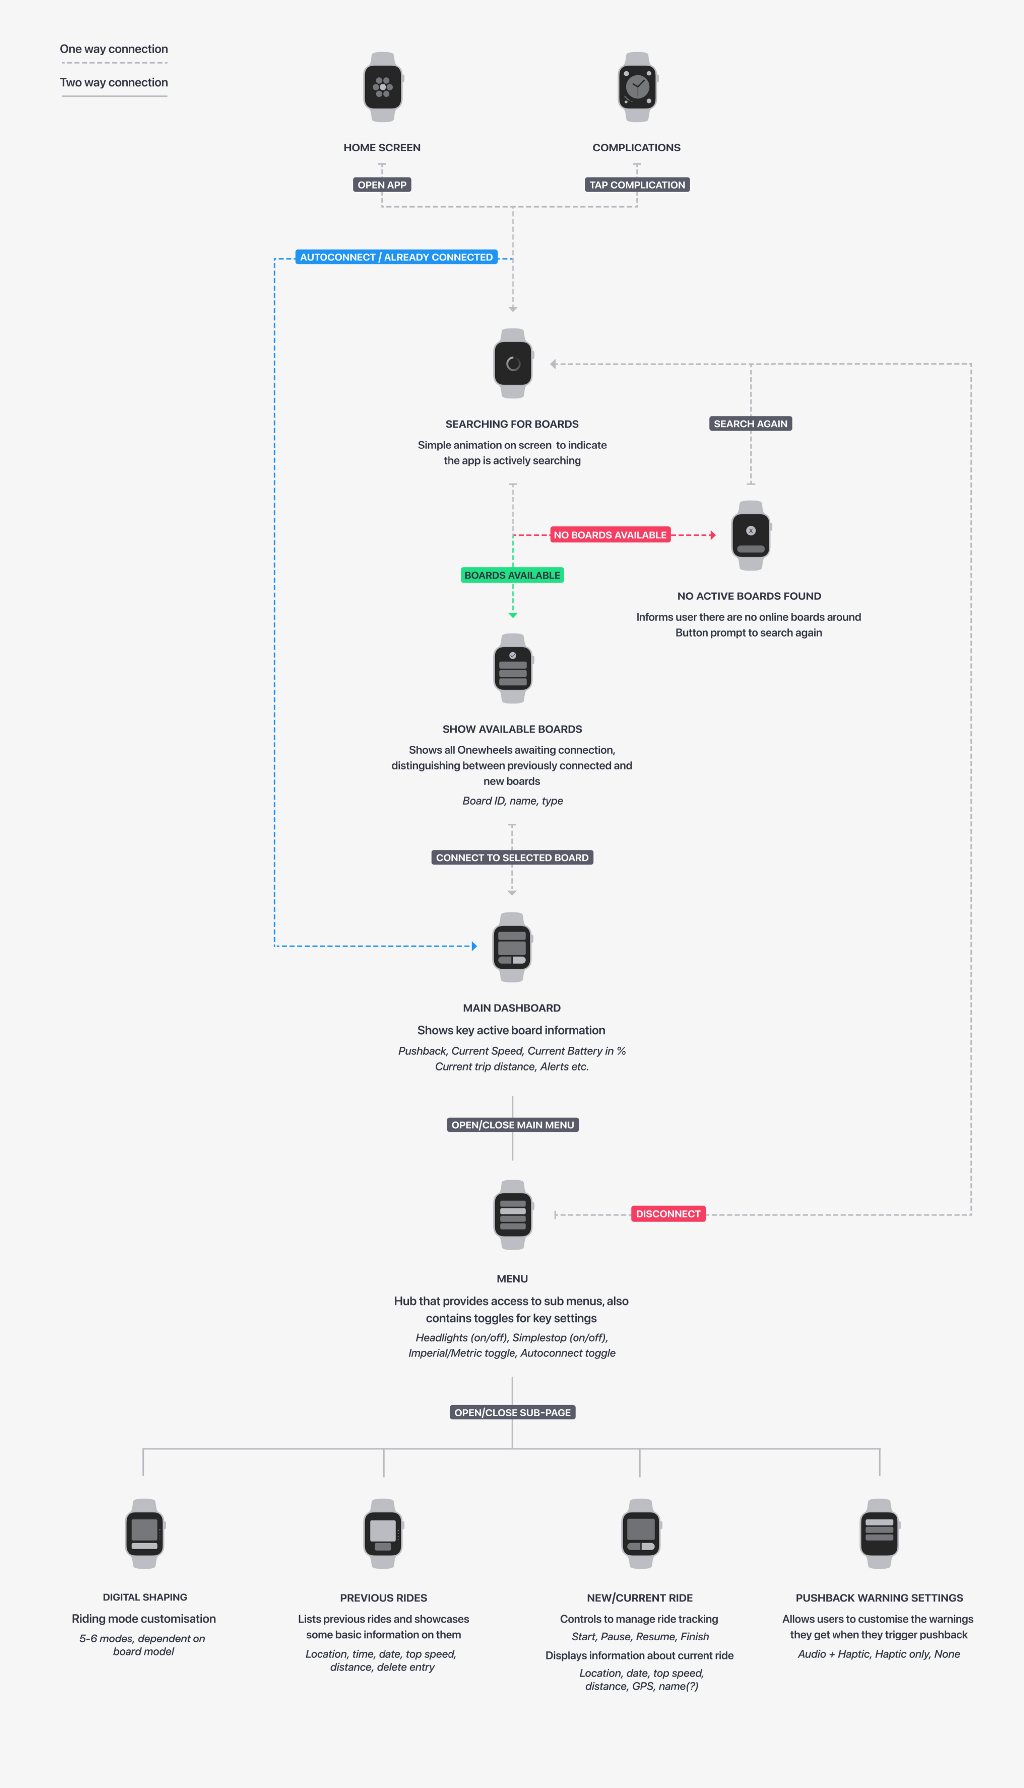 A visual map of the app's information architecture